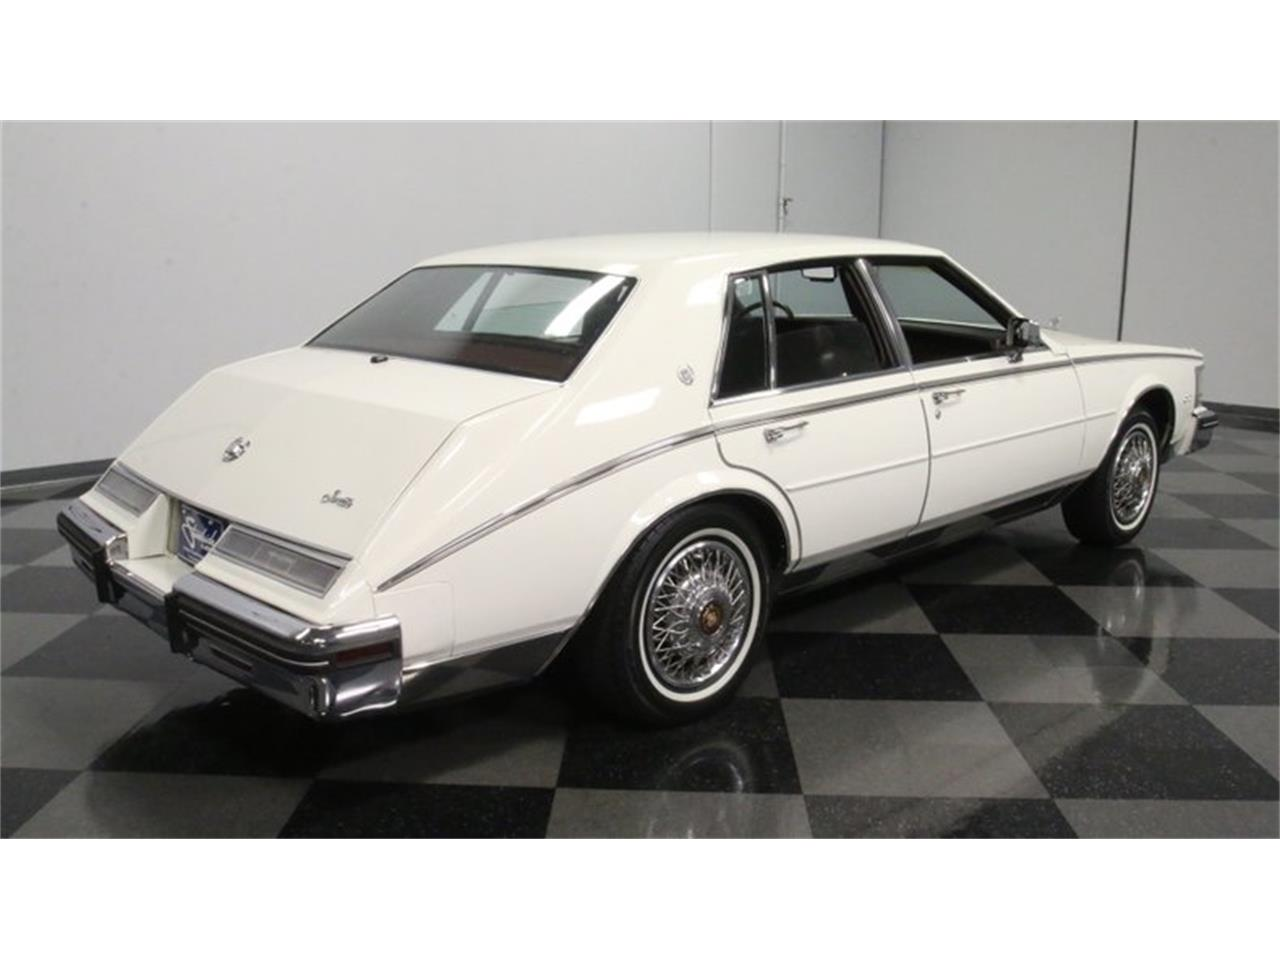 Large Picture of '85 Cadillac Seville located in Georgia - $11,995.00 - Q3ZM